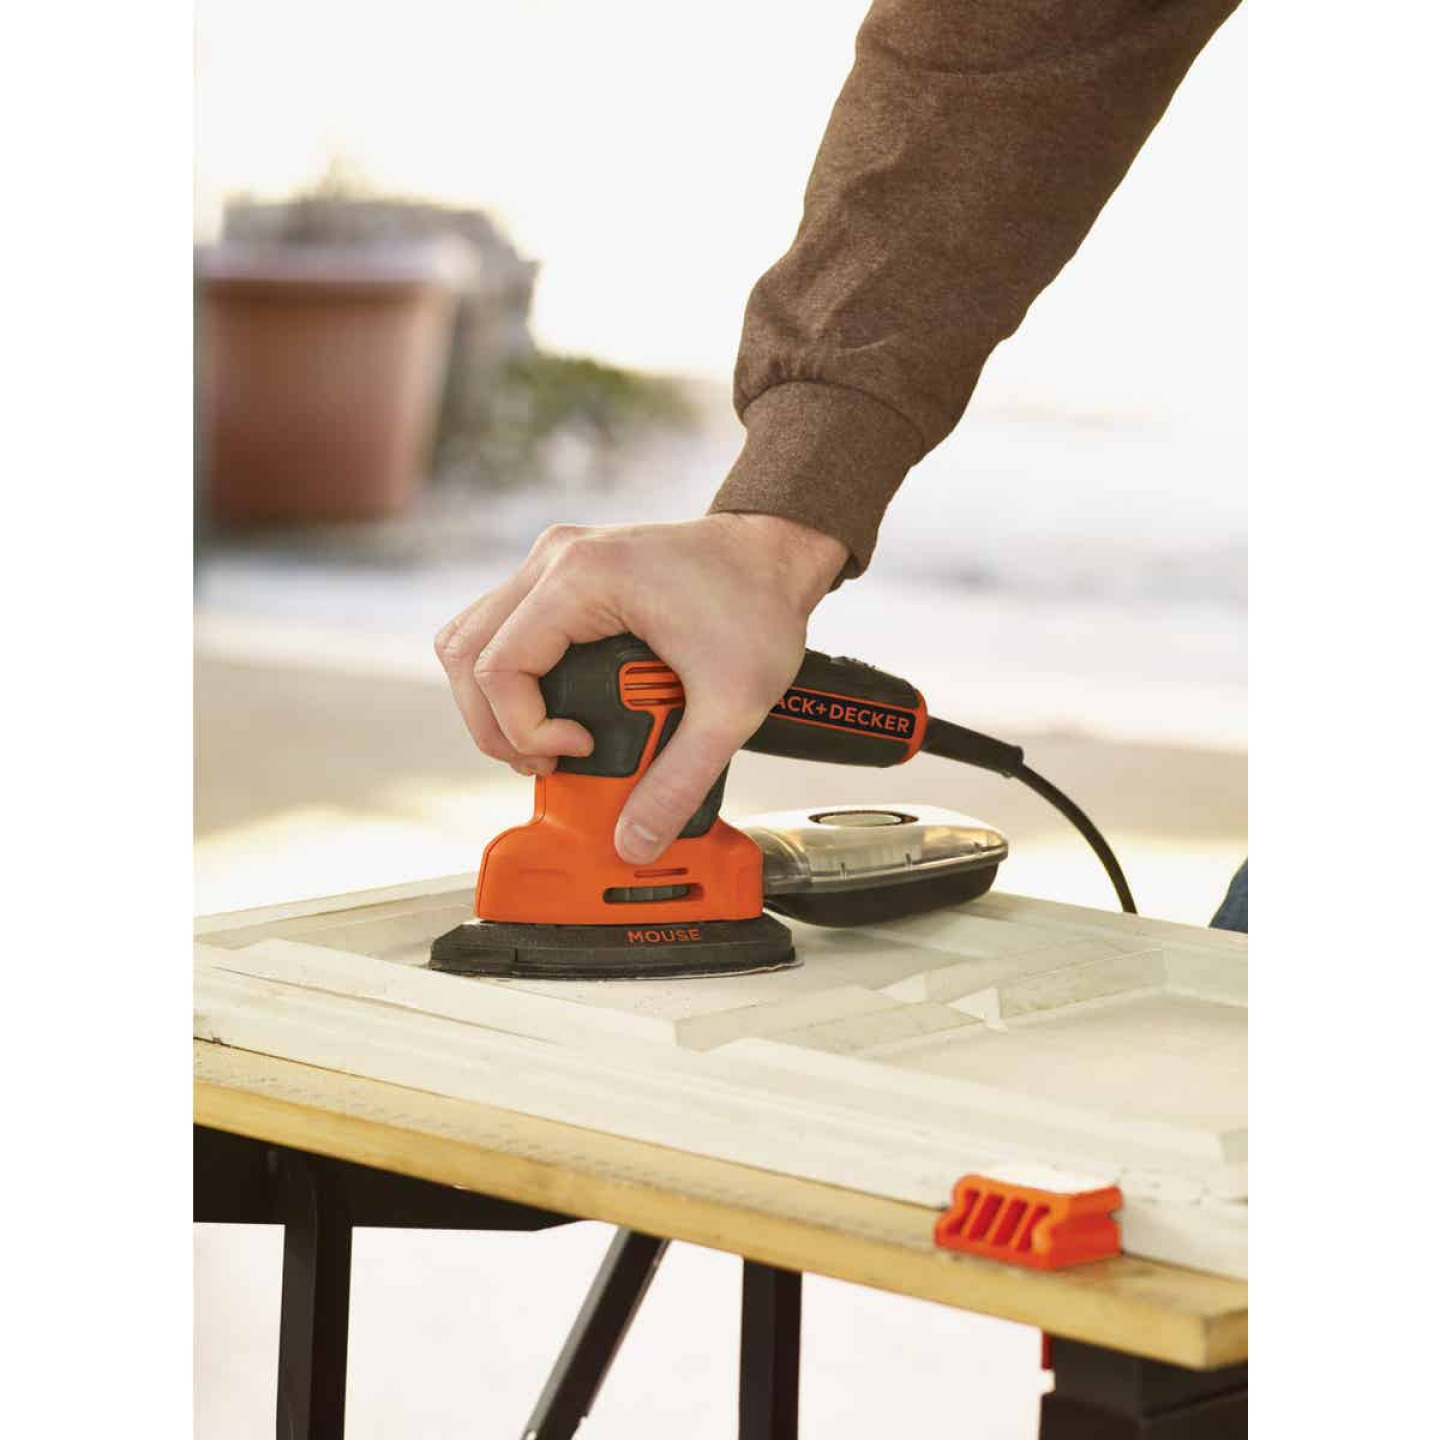 Black & Decker Mouse 10 In. 1.2A Finish Sander Image 5